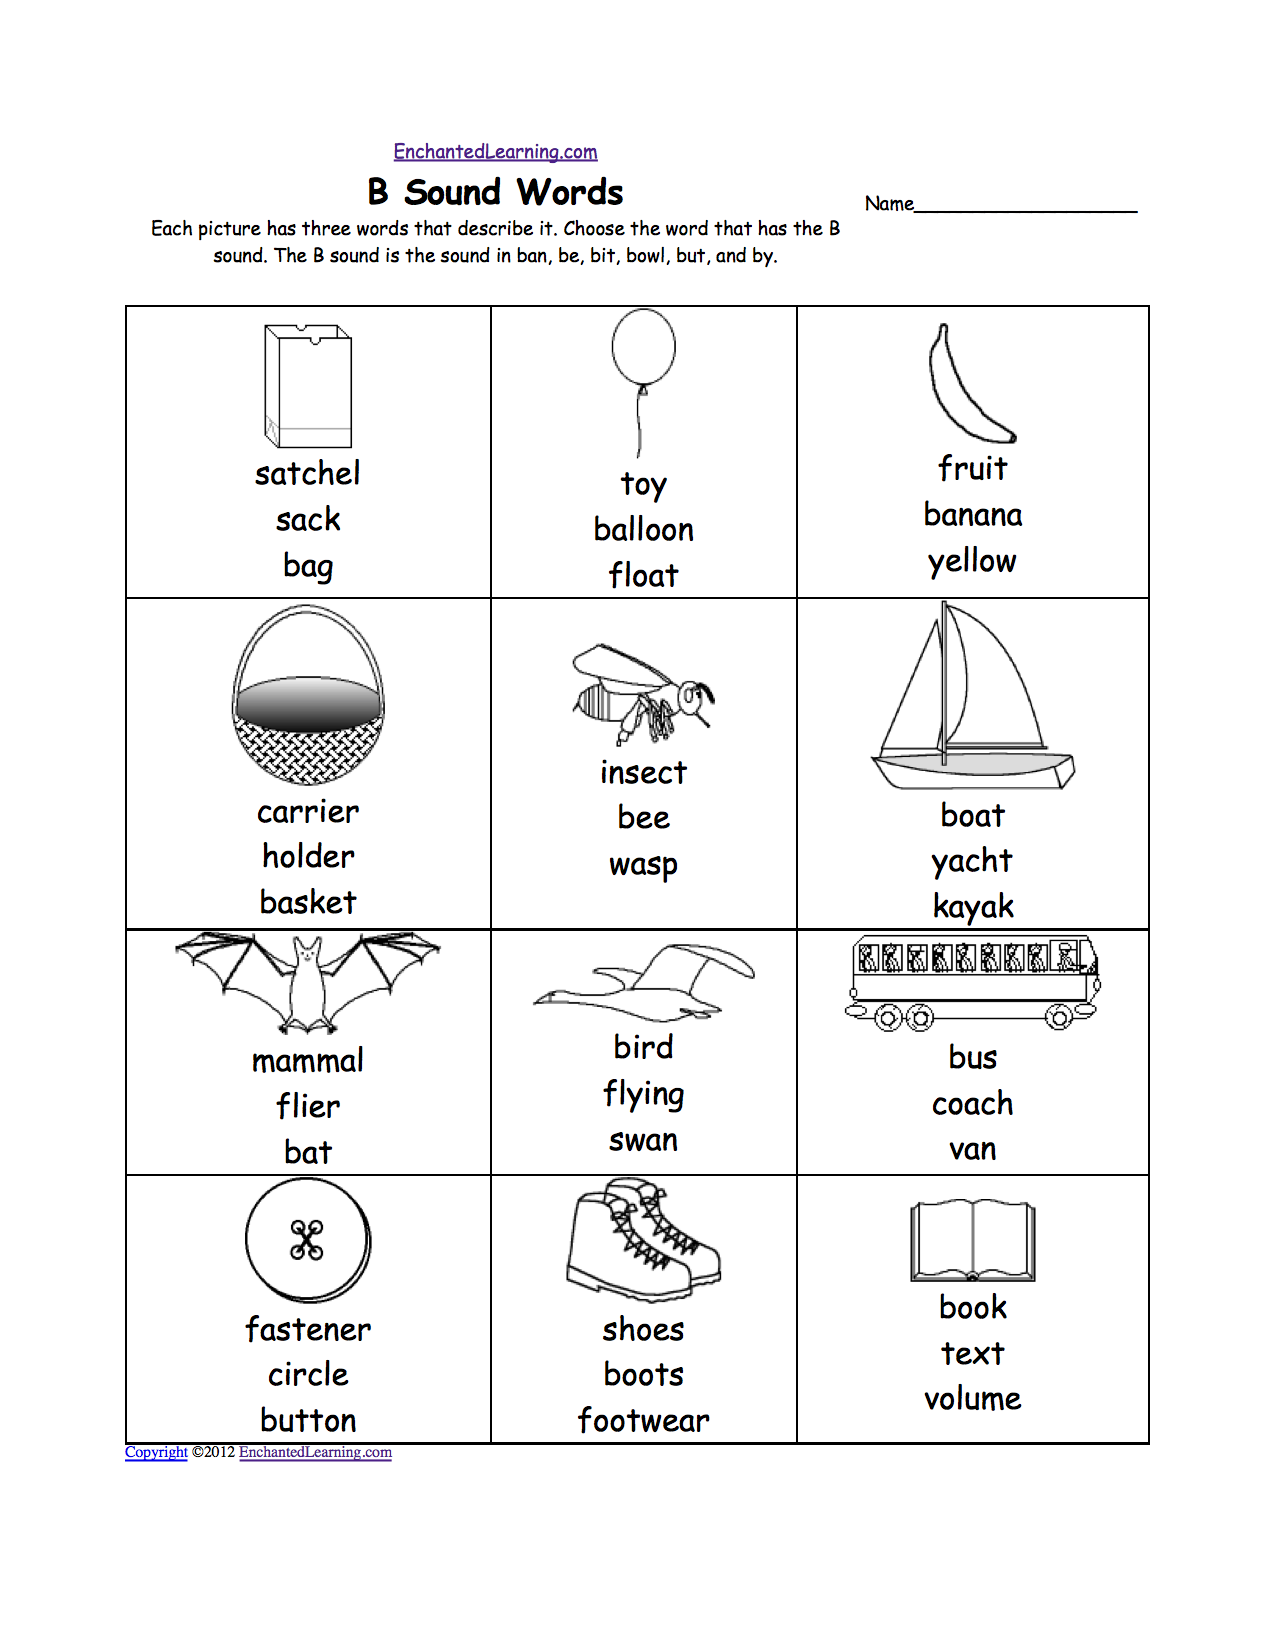 Aldiablosus  Splendid Phonics Worksheets Multiple Choice Worksheets To Print  With Excellent Quotbquot Sound Phonics Worksheet Multiple Choice Each Picture Has Three Words That Describe It Choose The Word That Has A Quotbquot Sound The Quotbquot Sound Is The Sound  With Astounding Adding And Subtracting Decimals Worksheets Pdf Also Metals And Nonmetals Worksheet In Addition Water Worksheets And Mitosis Worksheet Middle School As Well As Writing Chemical Reactions Worksheet Additionally Biomagnification Worksheet From Enchantedlearningcom With Aldiablosus  Excellent Phonics Worksheets Multiple Choice Worksheets To Print  With Astounding Quotbquot Sound Phonics Worksheet Multiple Choice Each Picture Has Three Words That Describe It Choose The Word That Has A Quotbquot Sound The Quotbquot Sound Is The Sound  And Splendid Adding And Subtracting Decimals Worksheets Pdf Also Metals And Nonmetals Worksheet In Addition Water Worksheets From Enchantedlearningcom